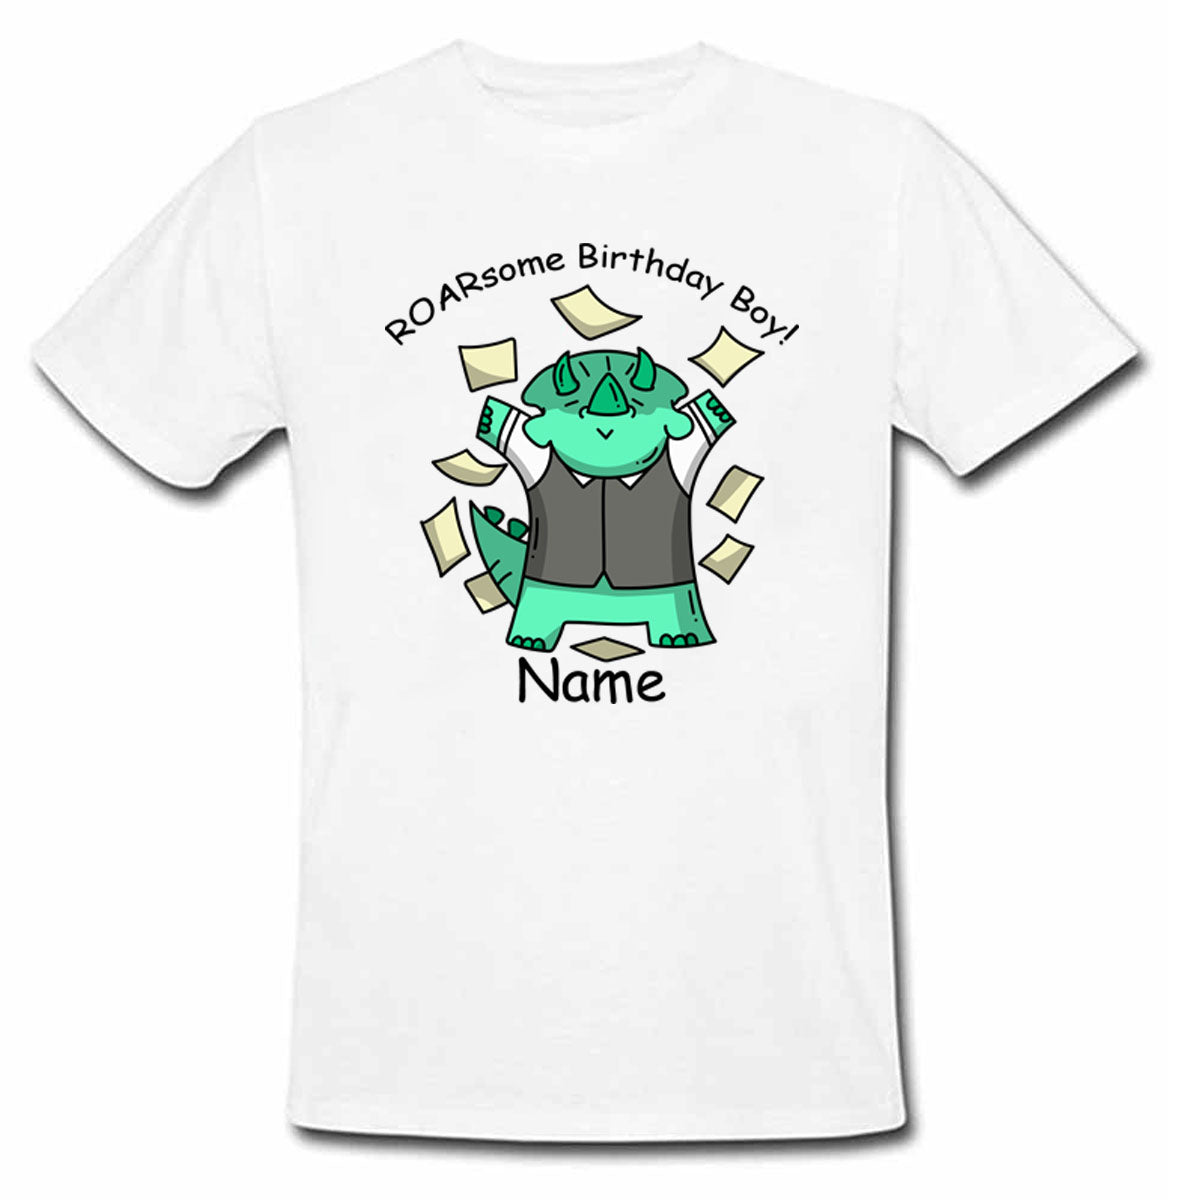 Sprinklecart Personalized Name Printed Dinosaur Poly-Cotton Kids T Shirt (White)